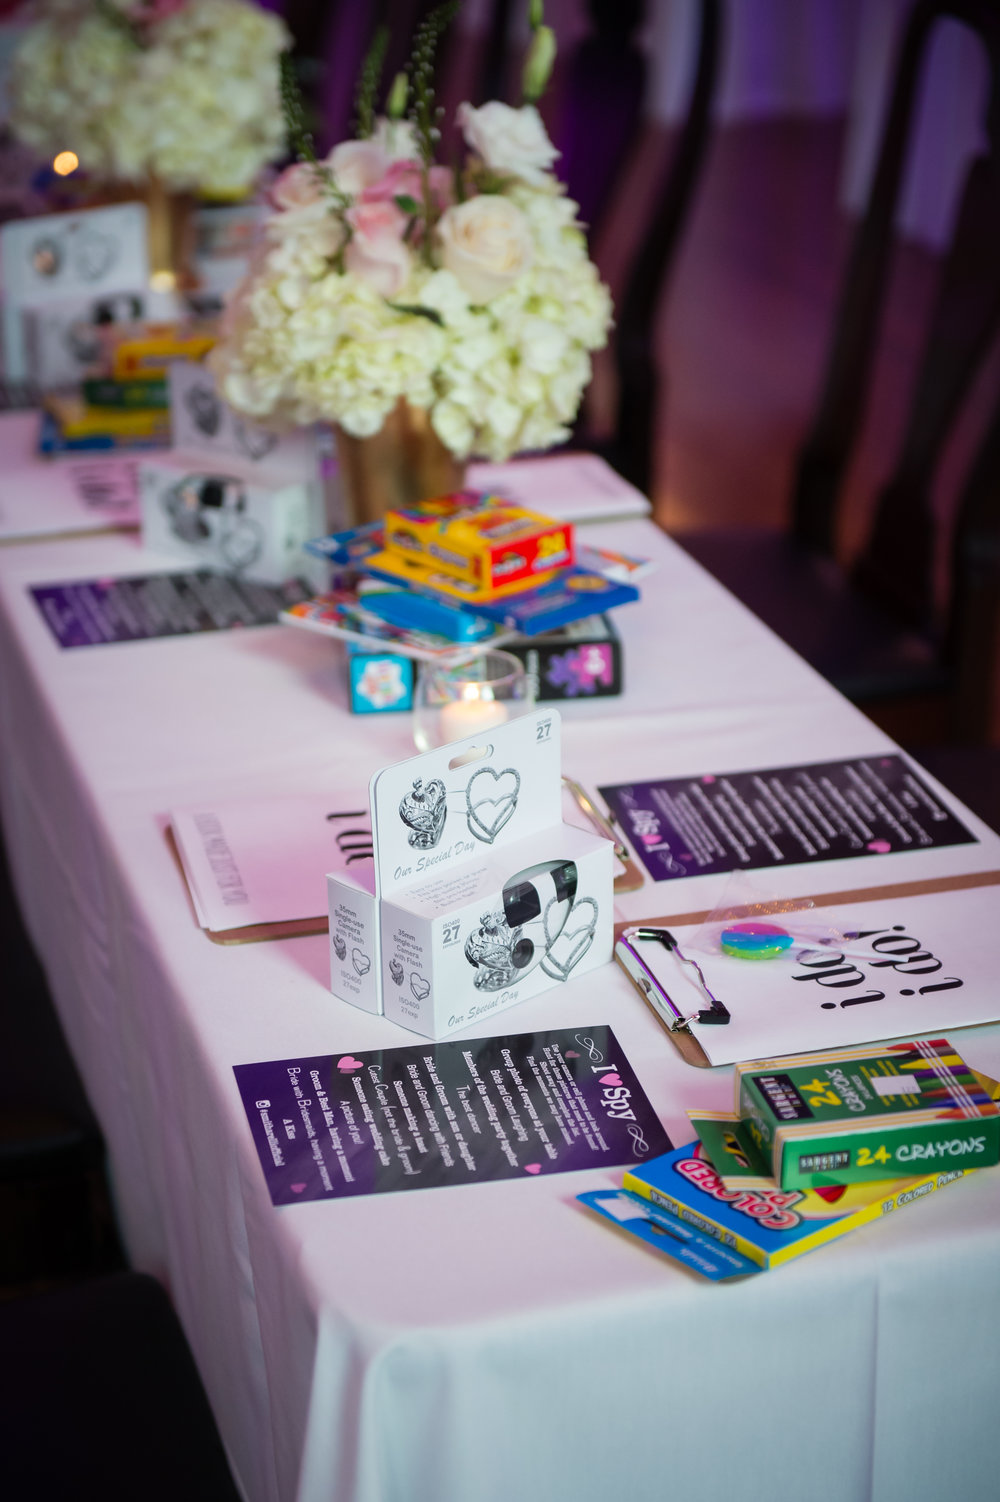 What better way then to keep the kids entertained then their own special table with activites galore!